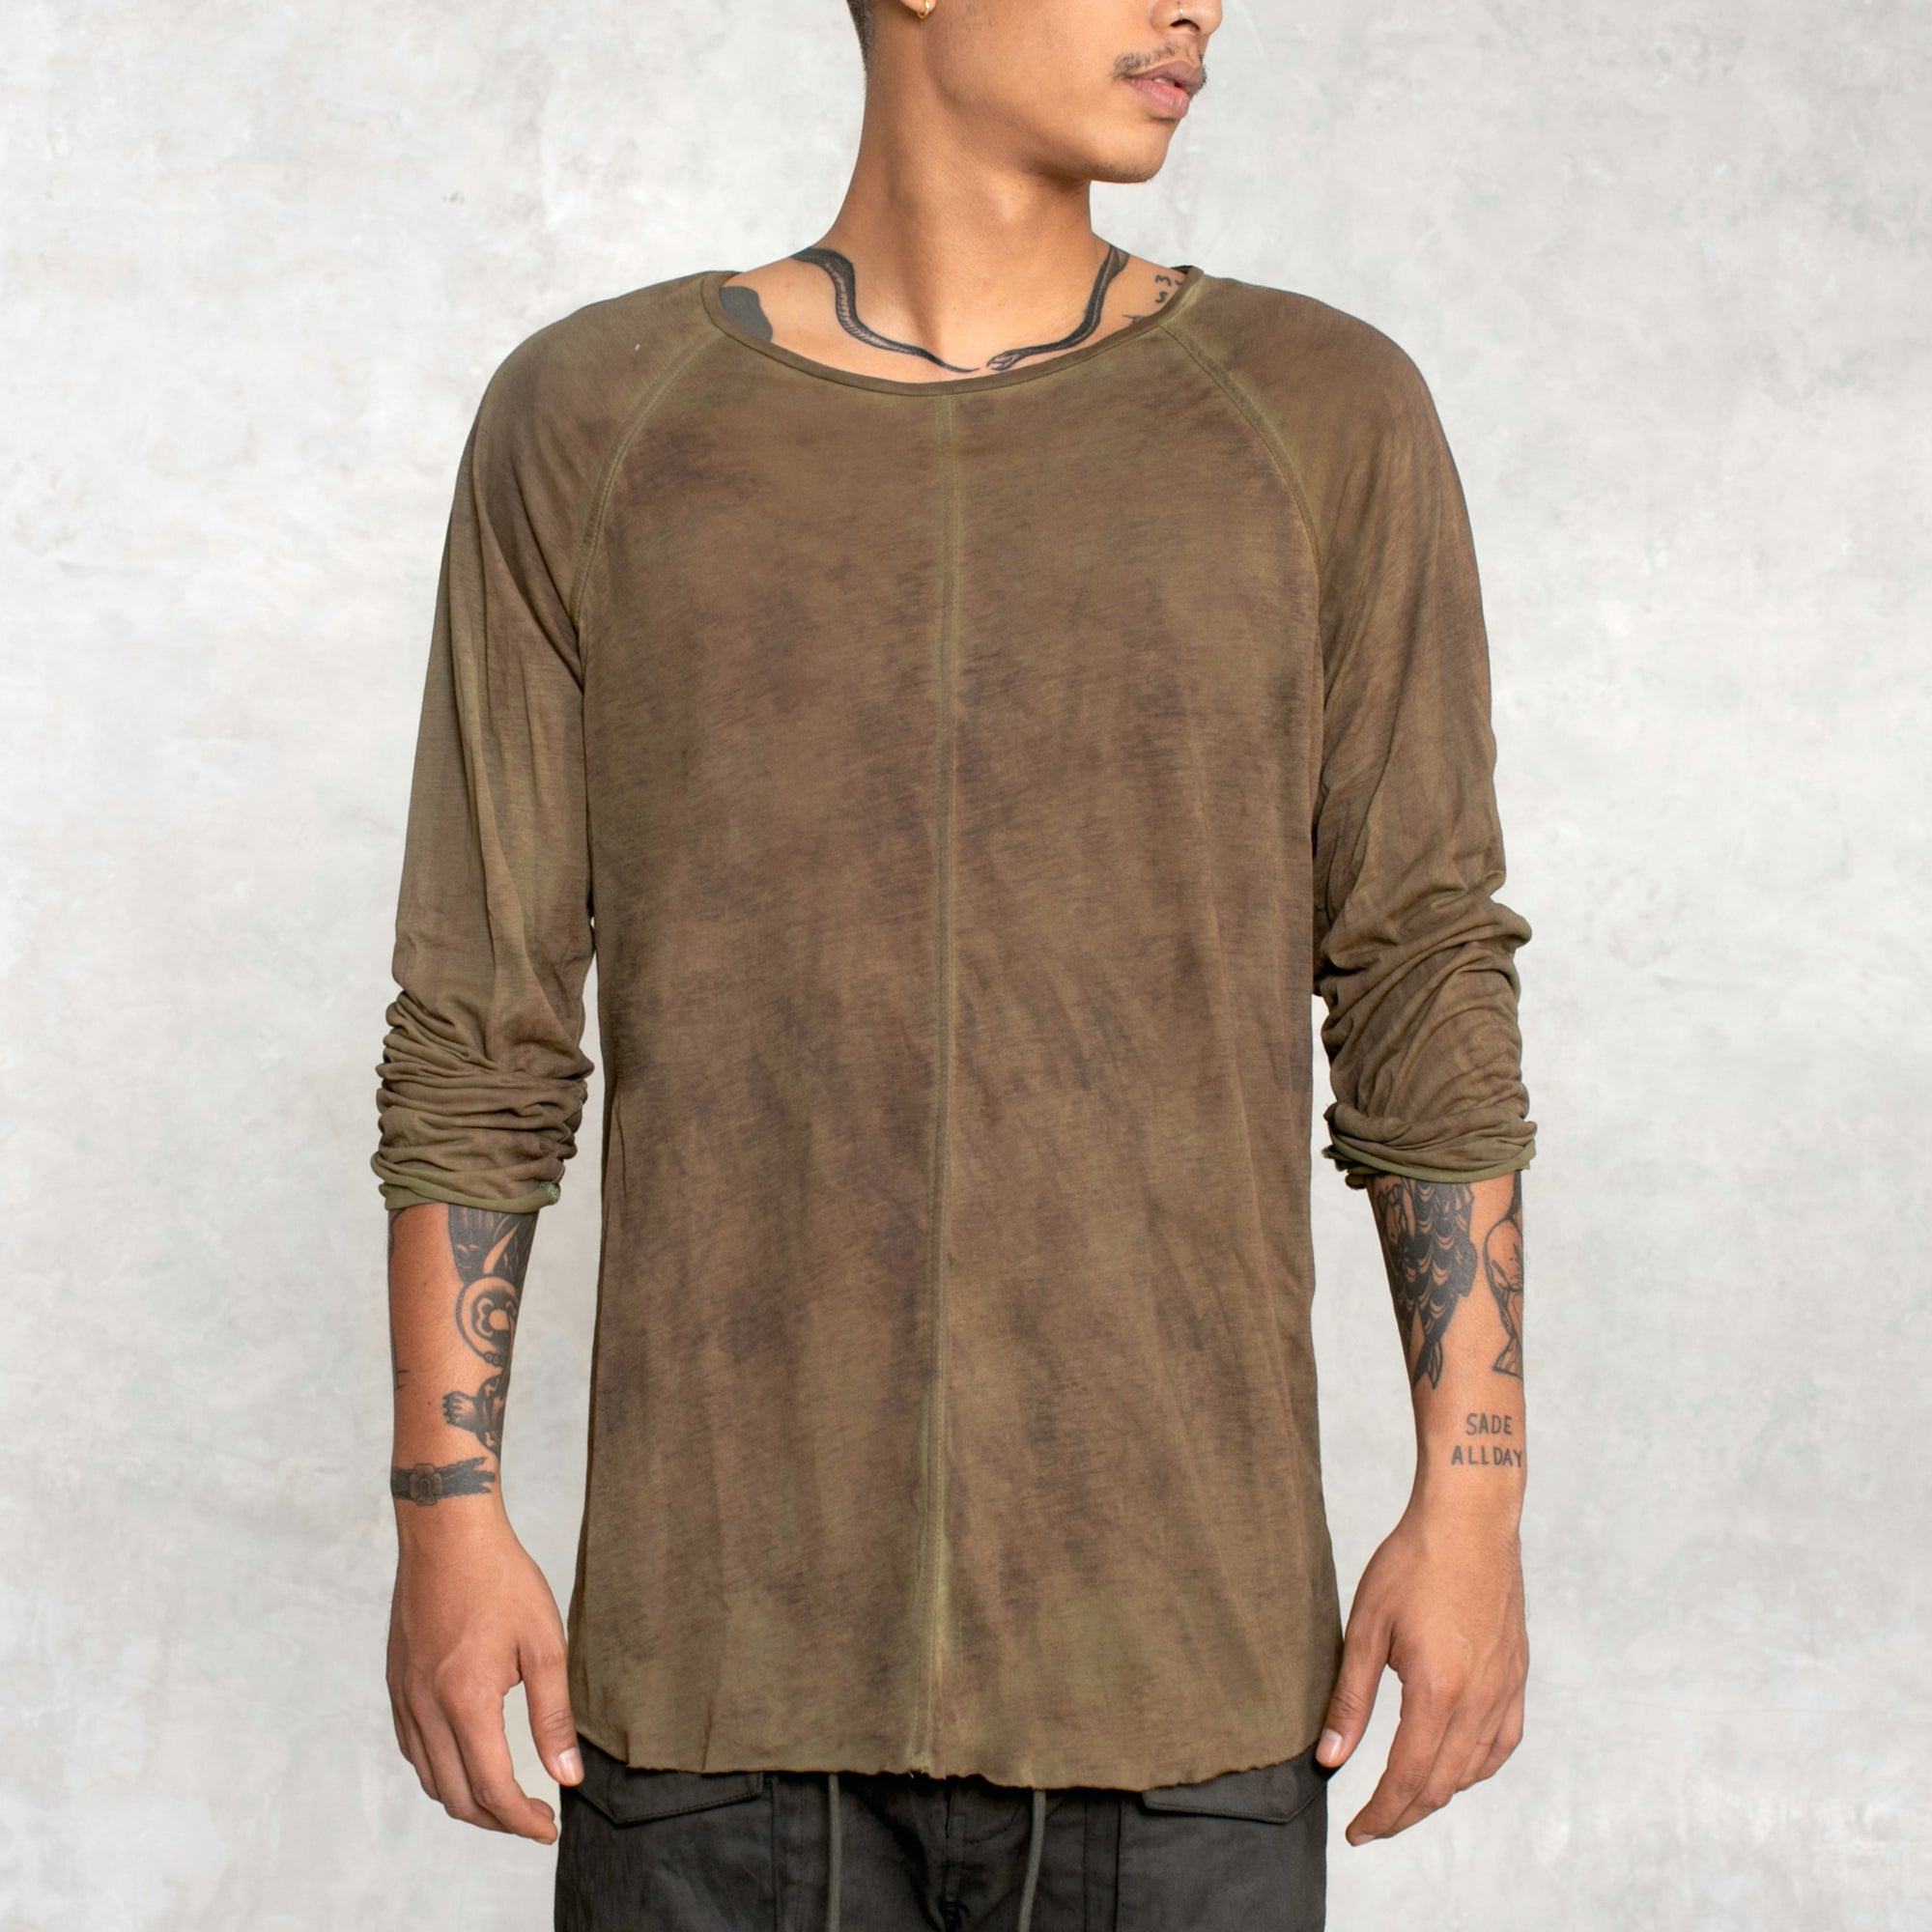 Channel Long Sleeve - Painted Olive